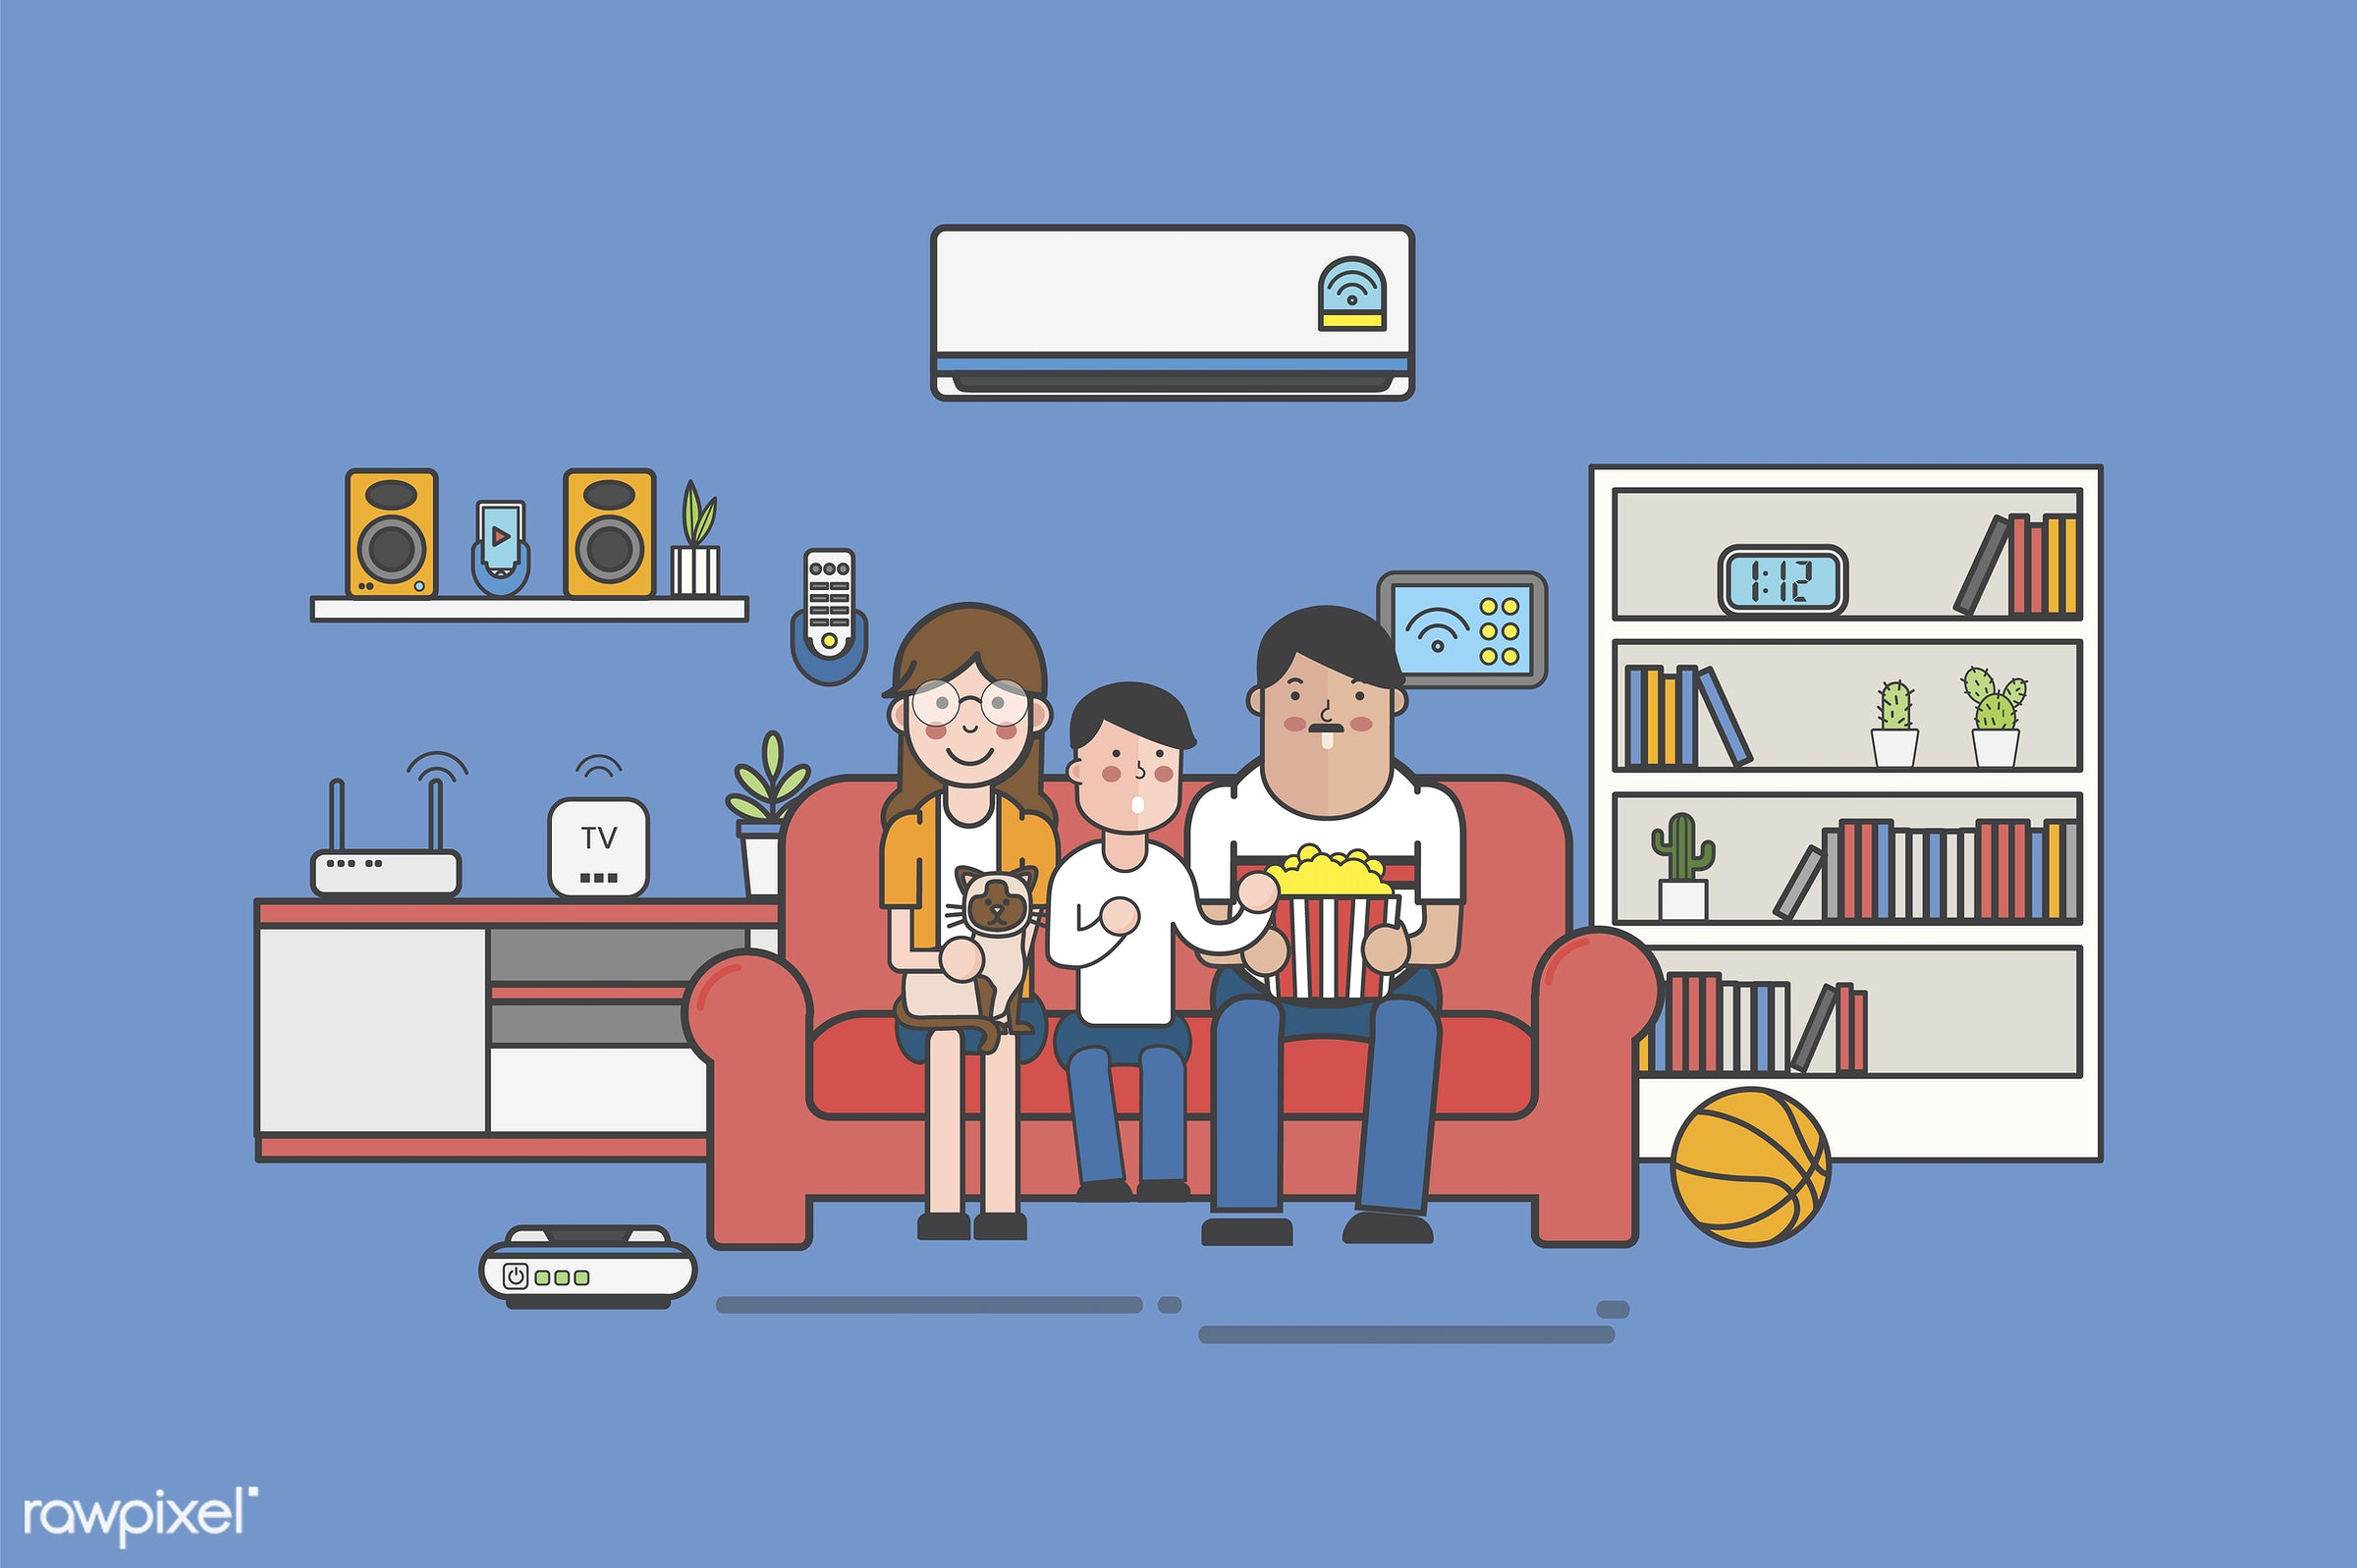 Illustration of a family watching TV at home - home, house, comfort, homely, cosy, warmth, living, household, residence, pad...